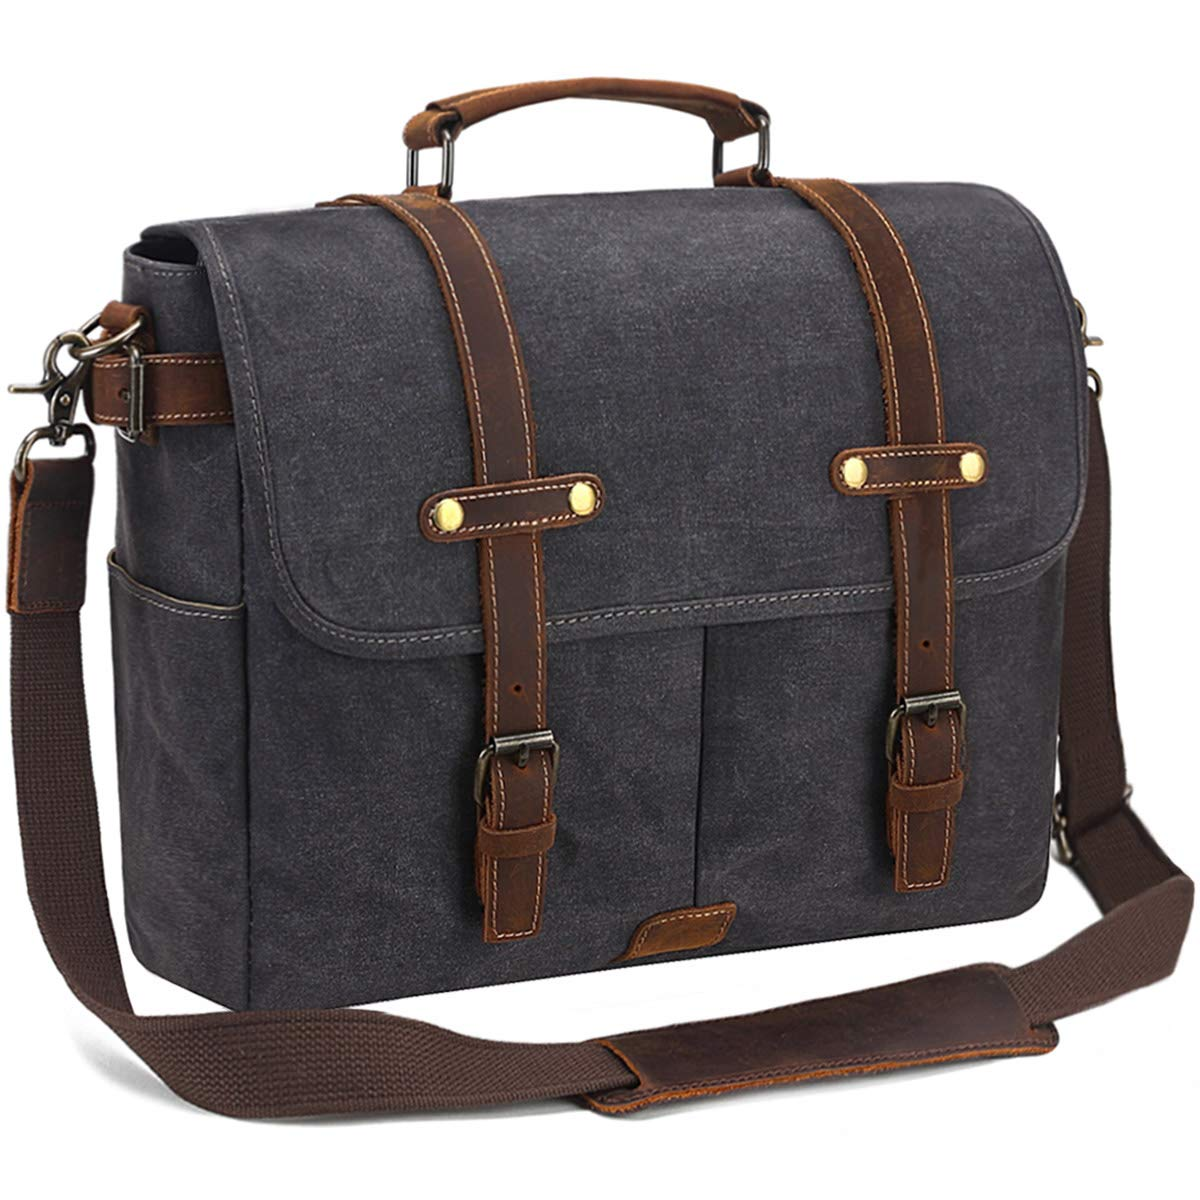 SOAEON Mens Messenger Bag,Laptop Bag 15.6 inch,Waterproof Vintage Canvas Briefcase, Leather Computer Bag for Business&School Travel Grey by SOAEON (Image #1)